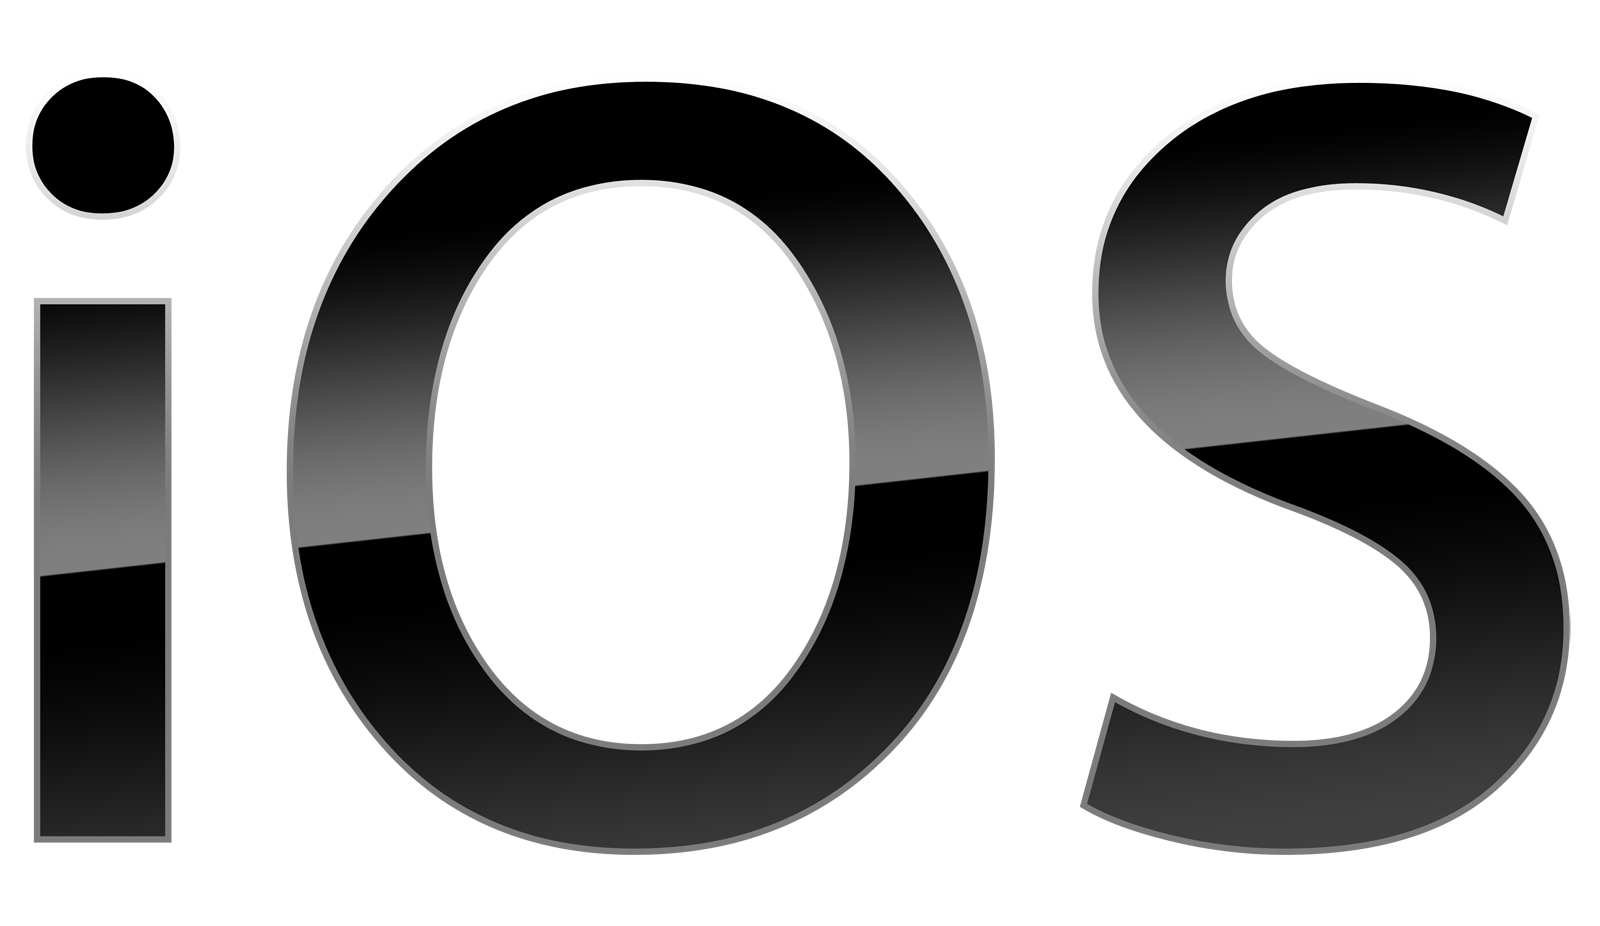 Ios Logo Ios Symbol Meaning History And Evolution